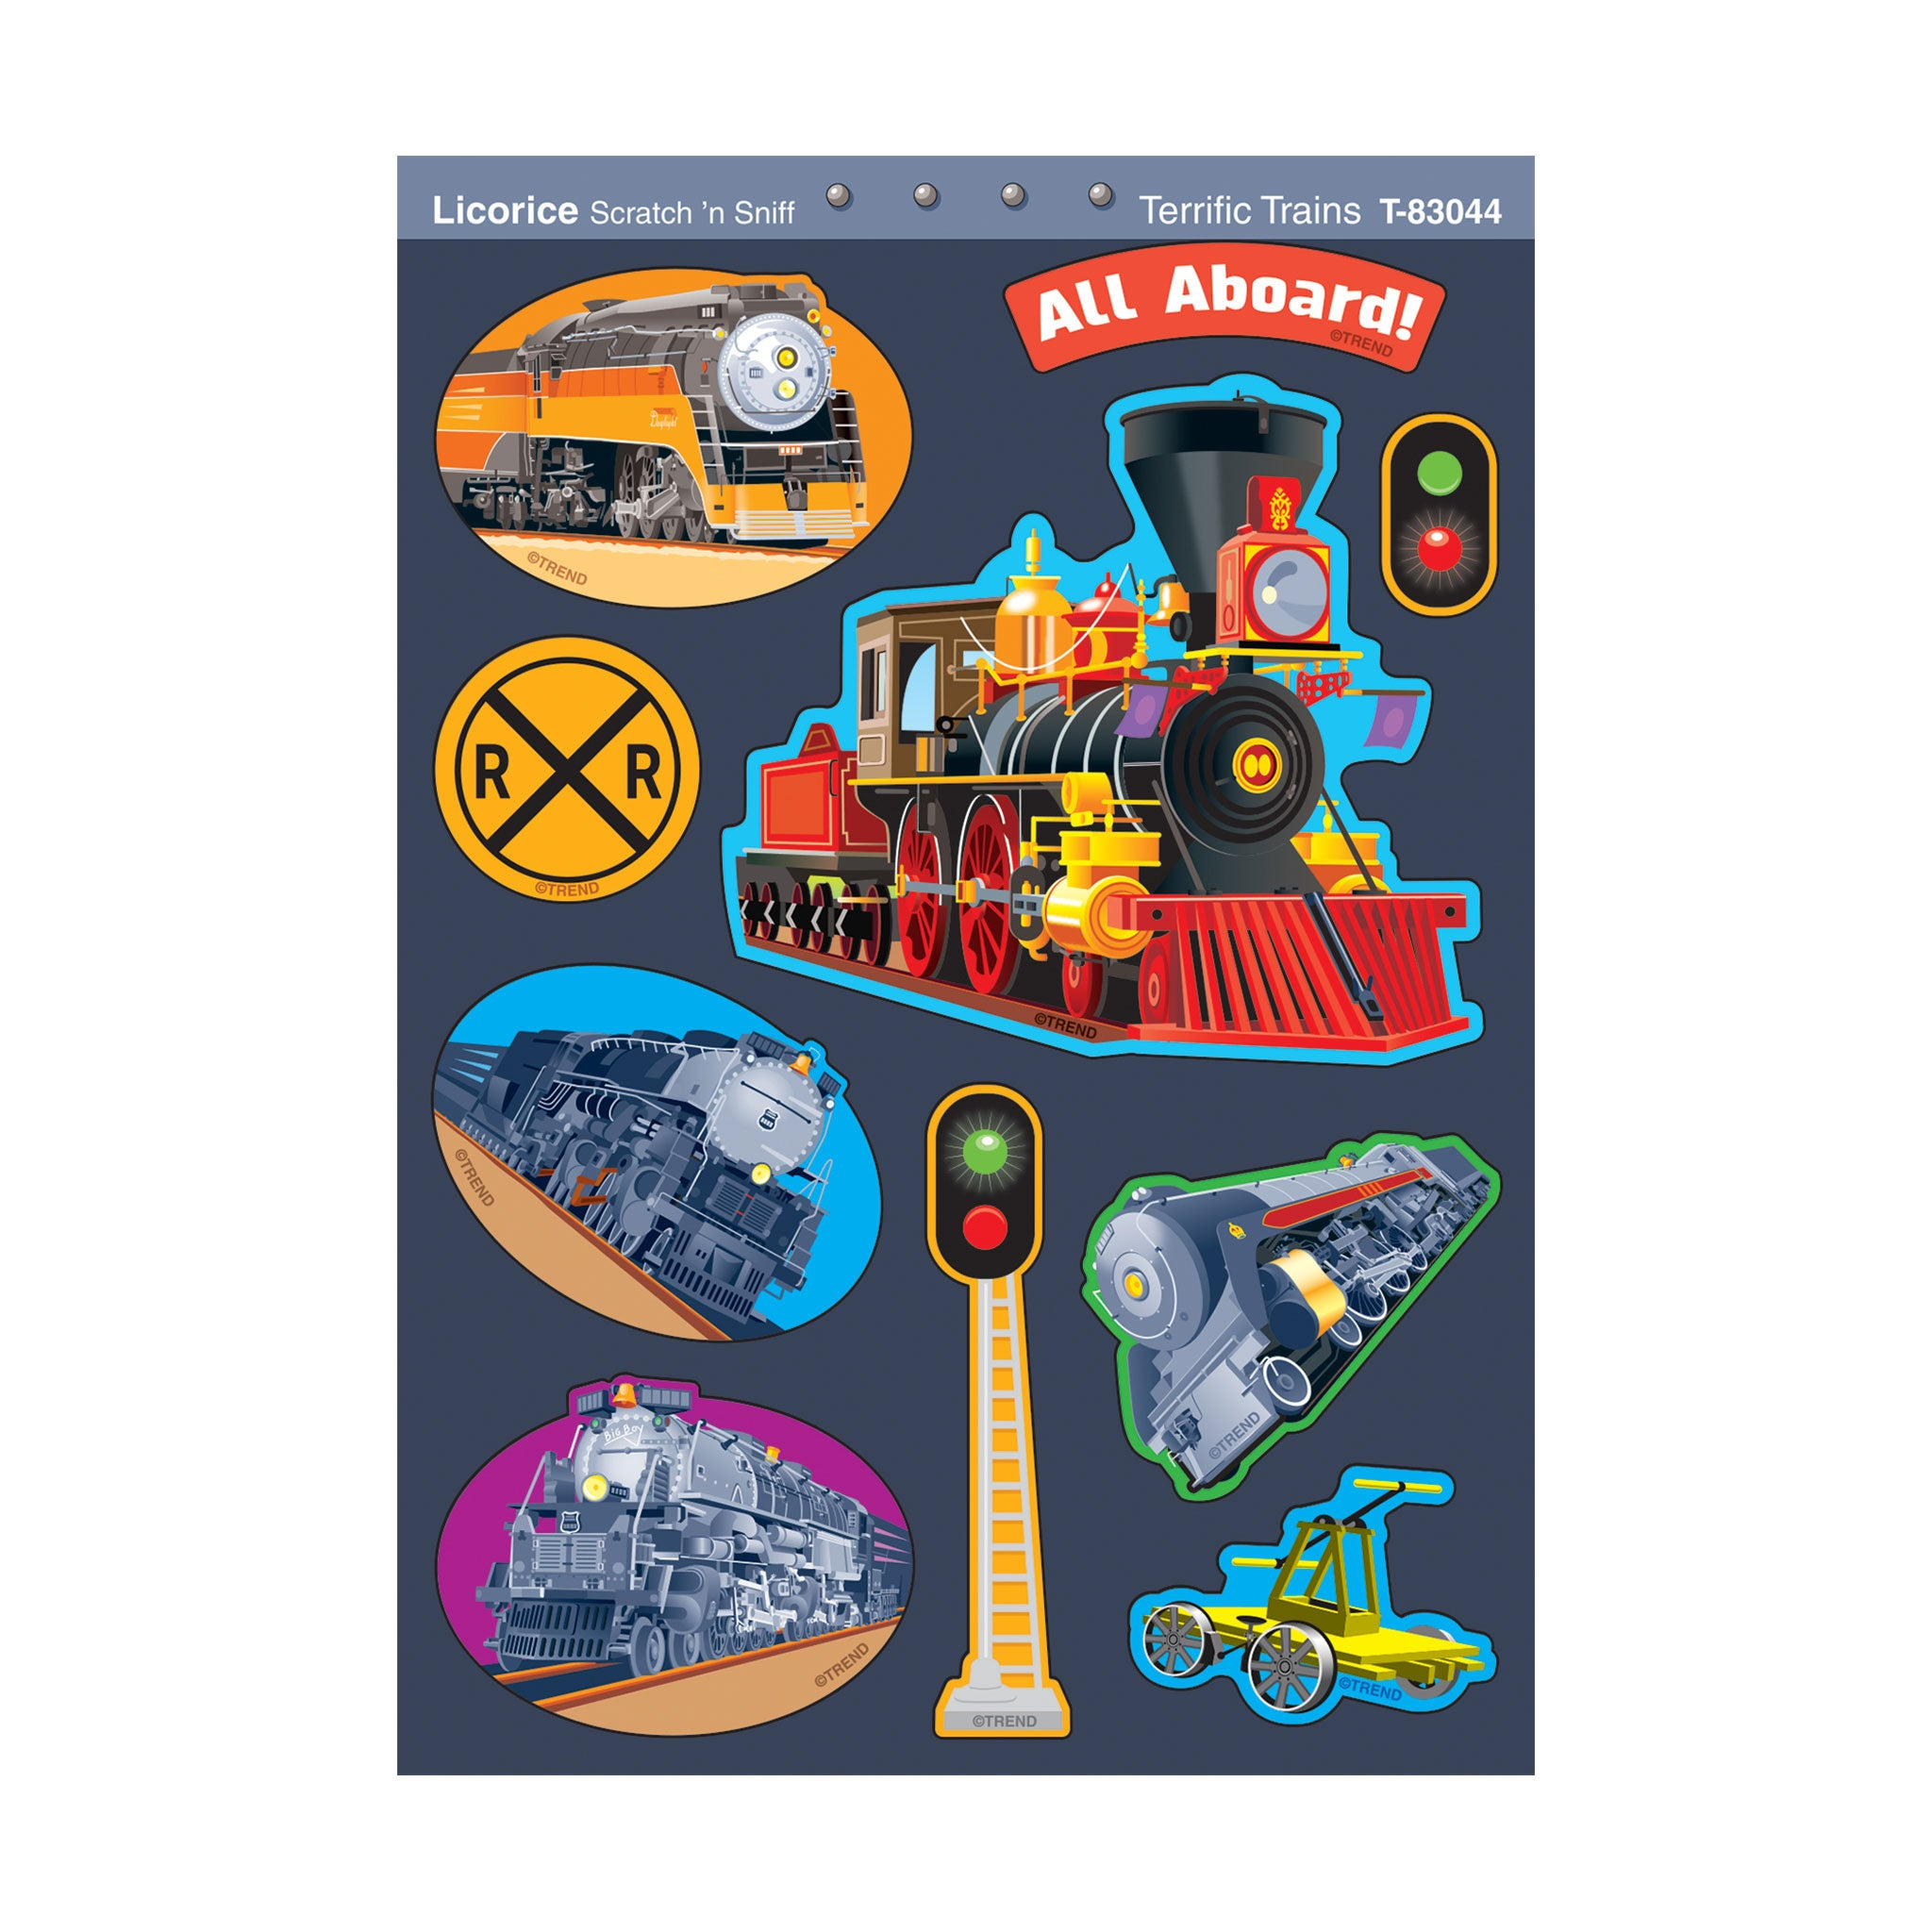 T83044-1-Stickers-Scratch-n-Sniff-Licorice-Terrific-Trains.jpg